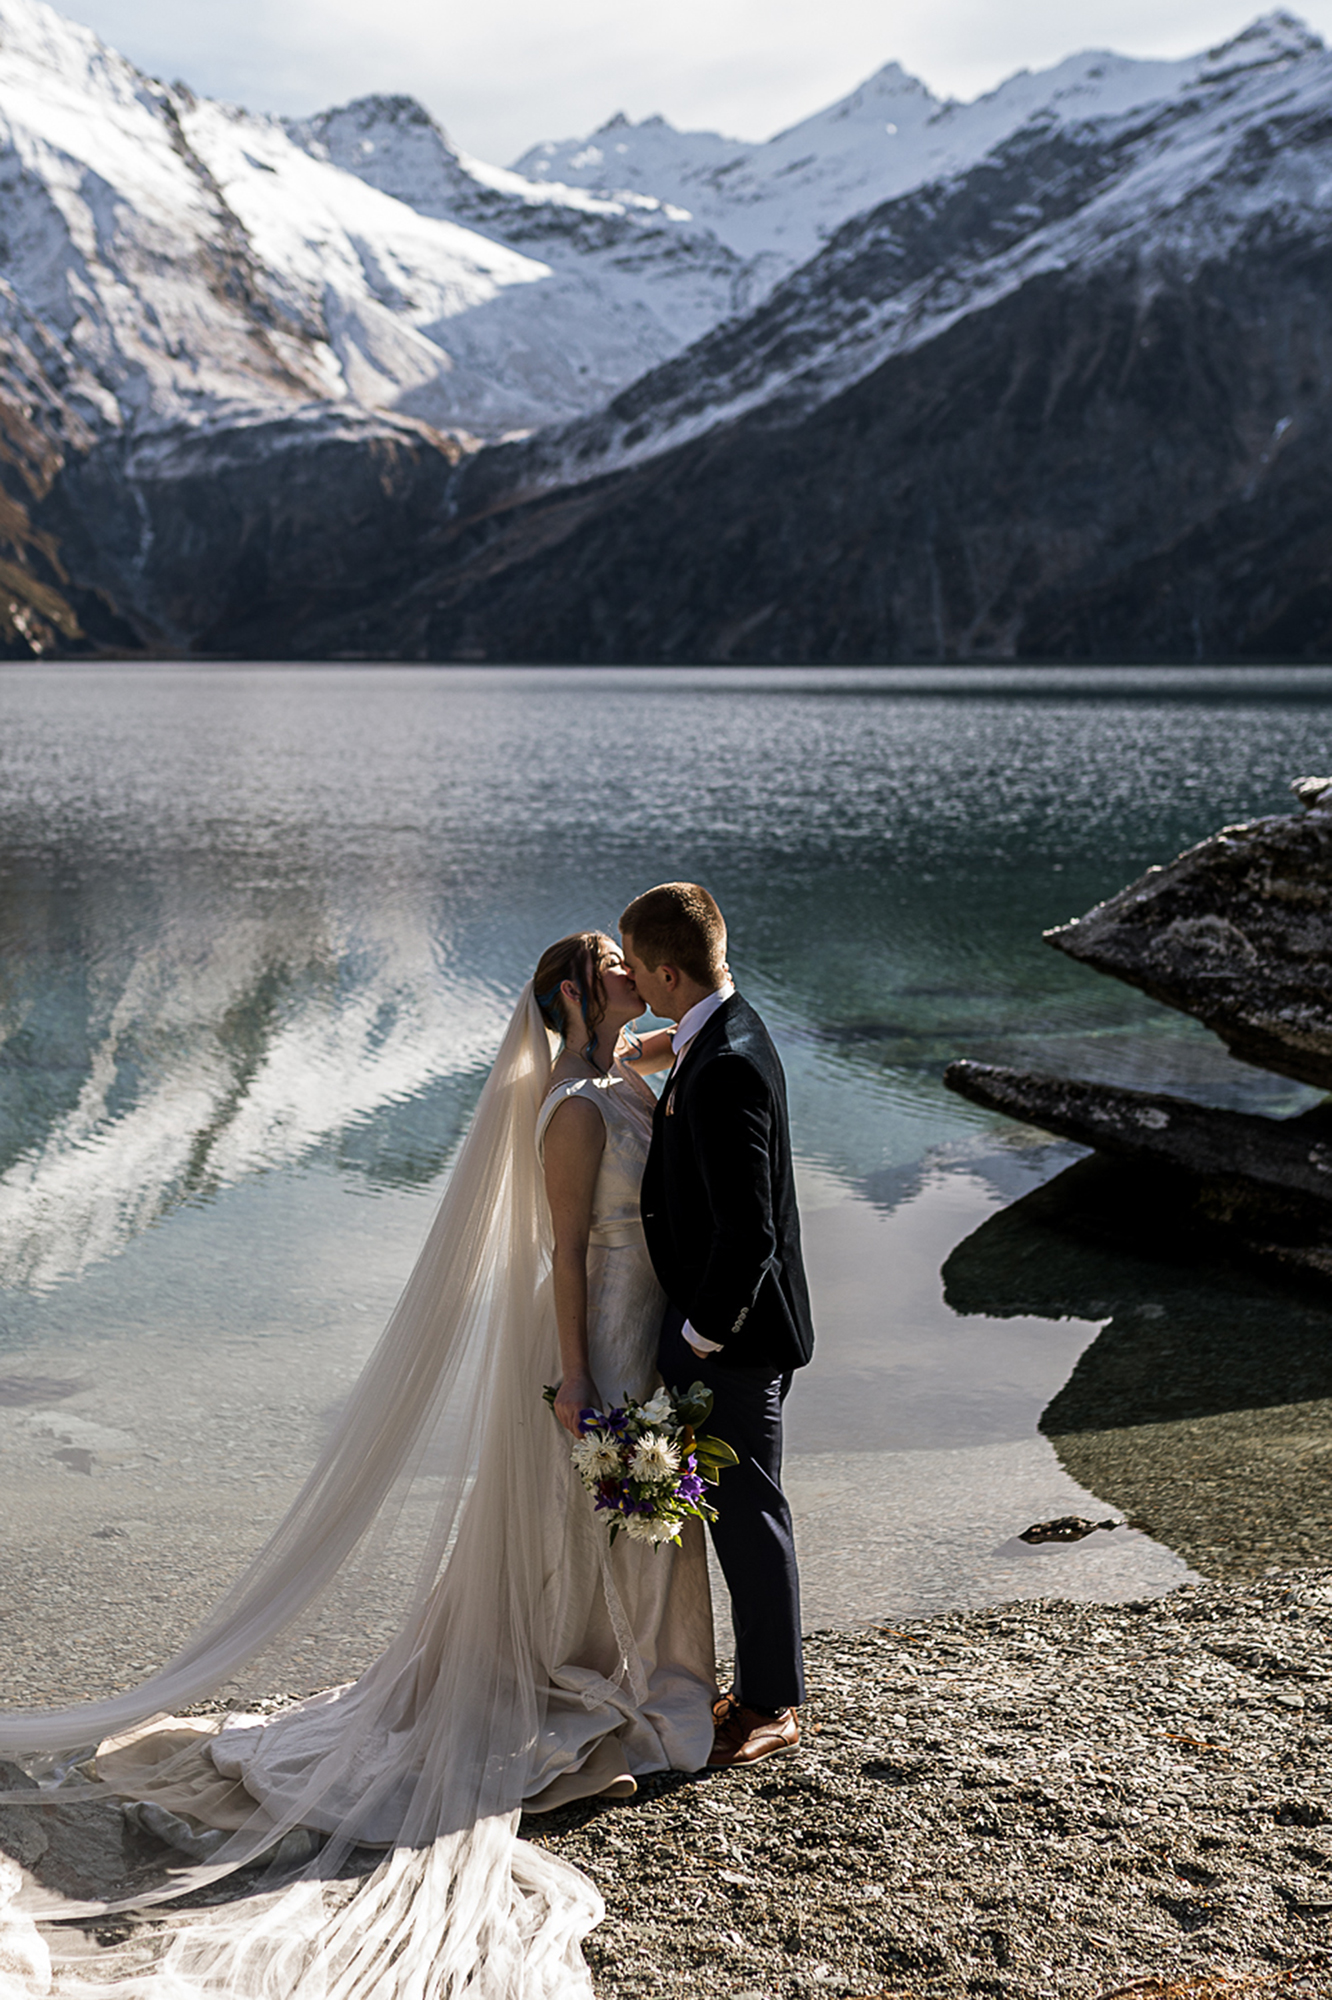 Once in a Life Time - Wildly Romantic Weddings & Elopements